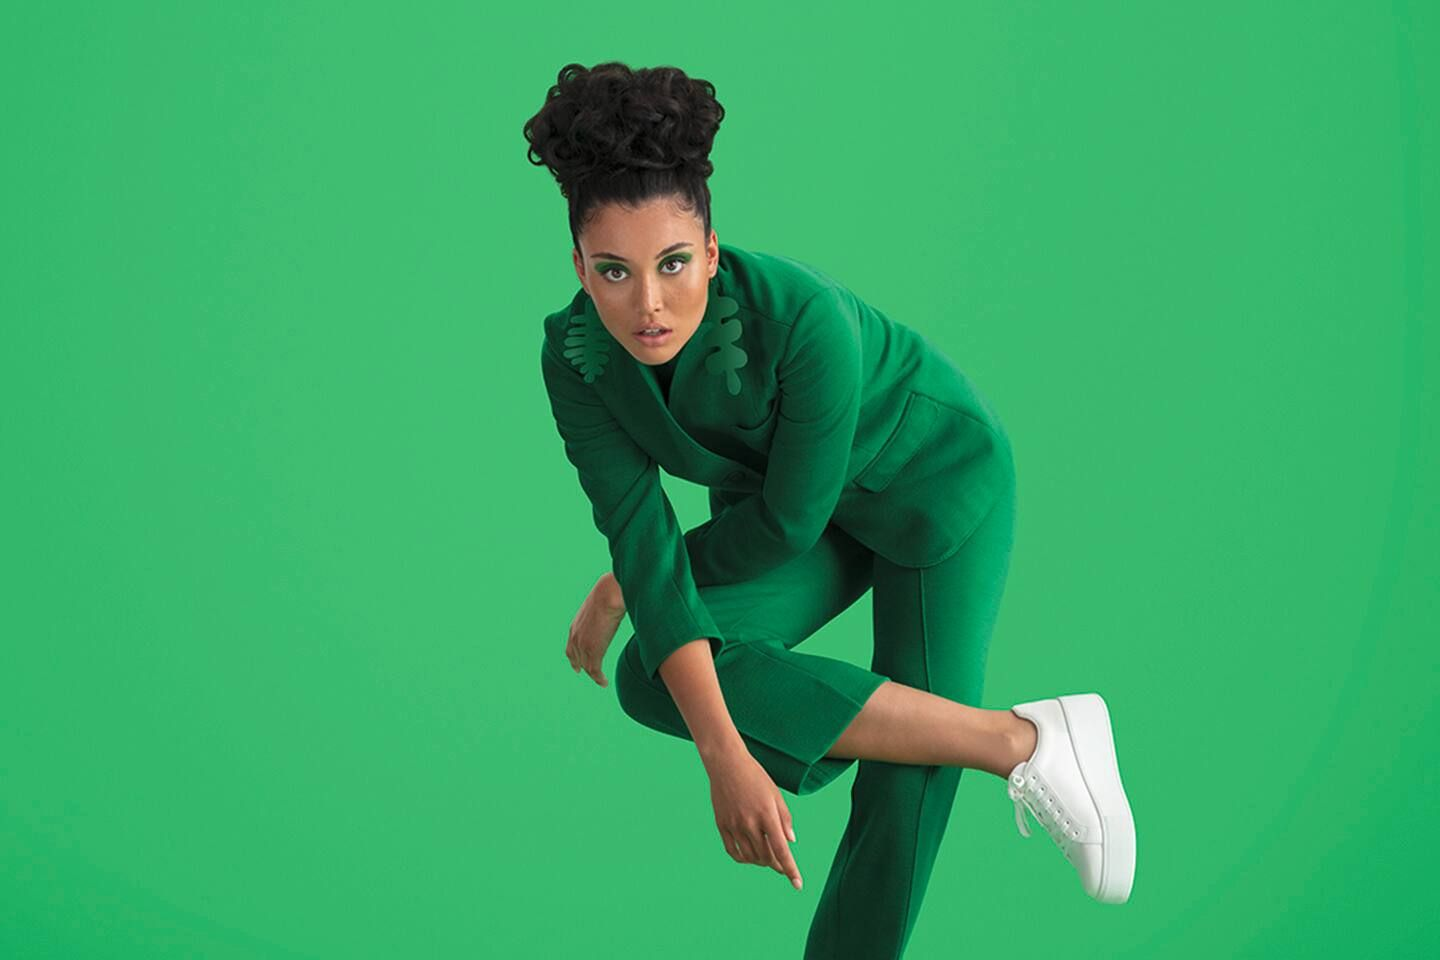 Lady in green suit, white takkies, standing and leaning on knee